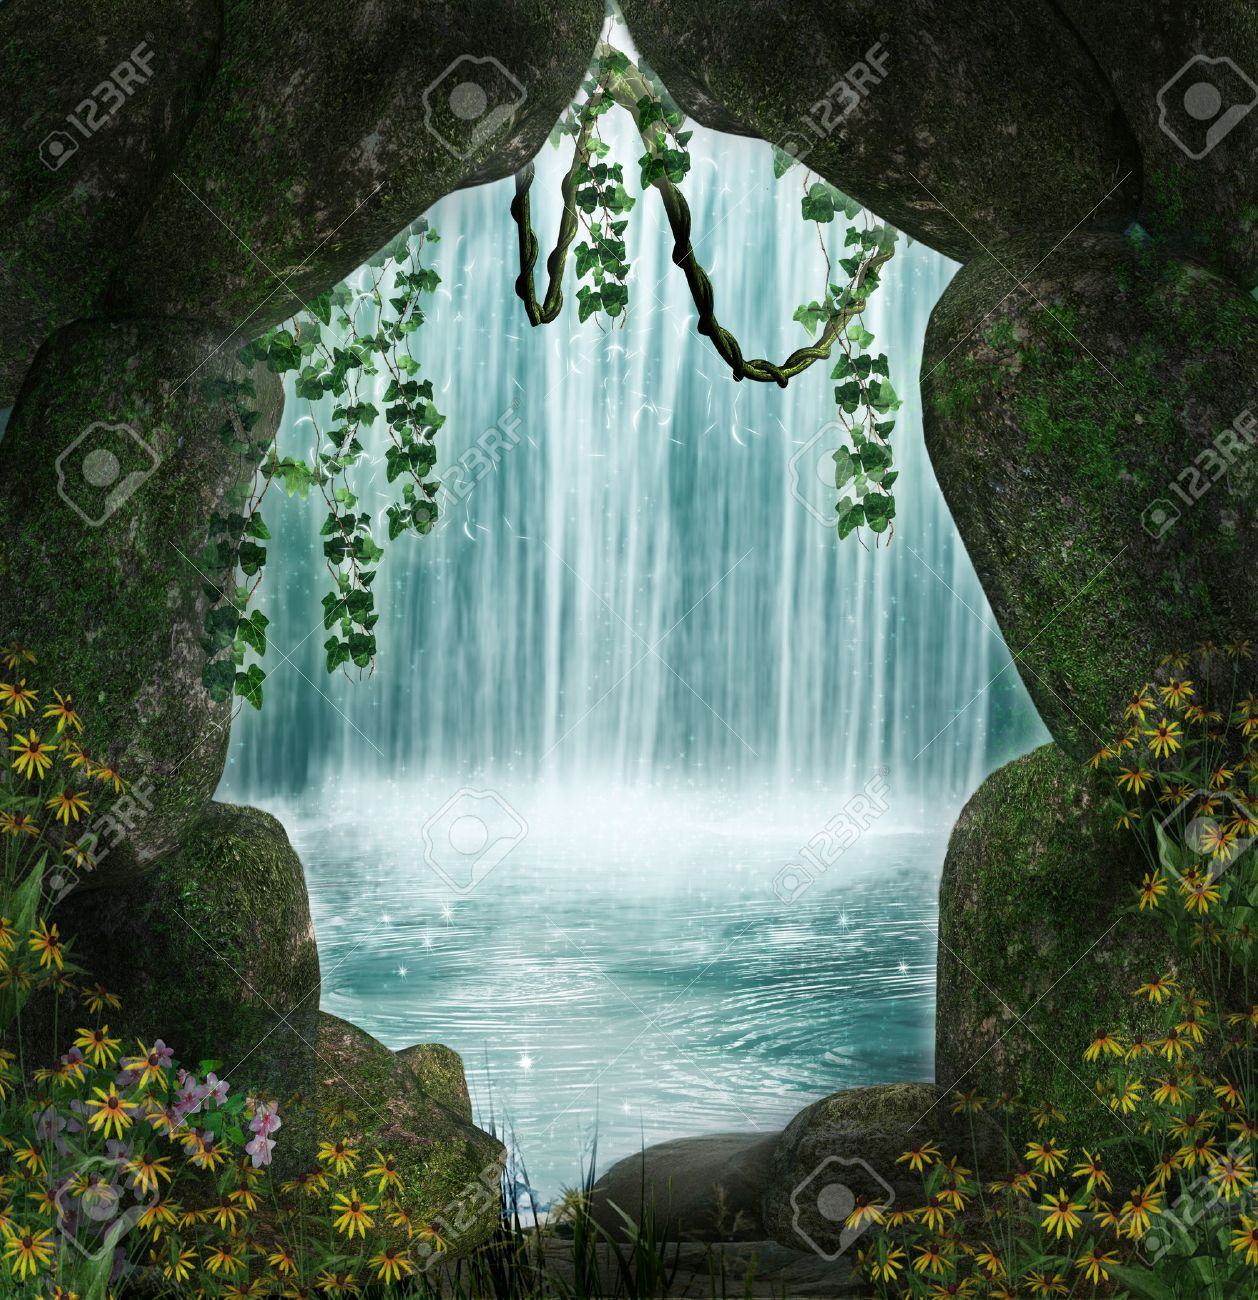 Fantastic cave and waterfall in the background - 27613546